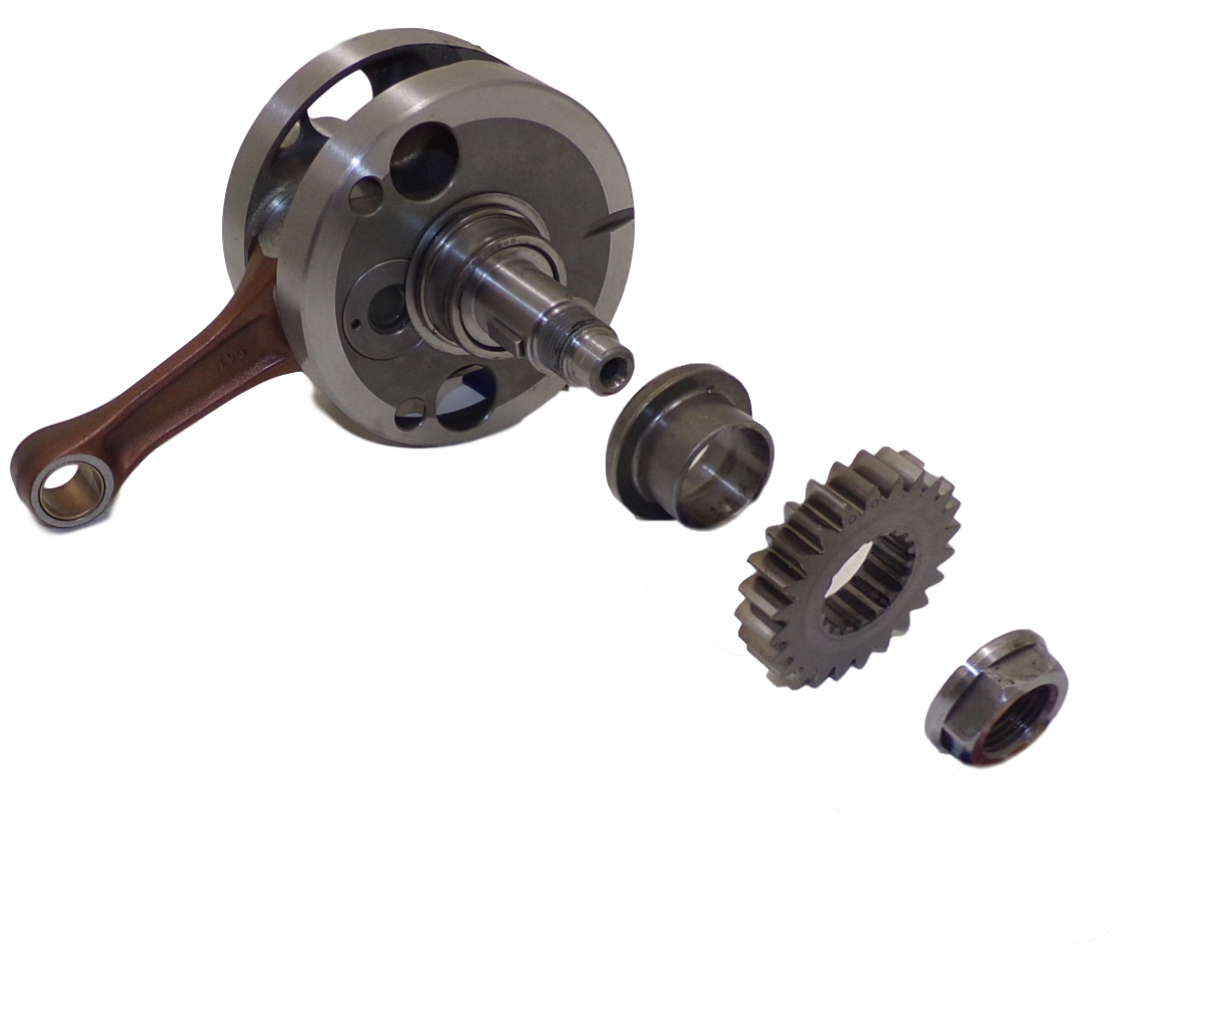 CRANK SHAFTS AND GEARS34